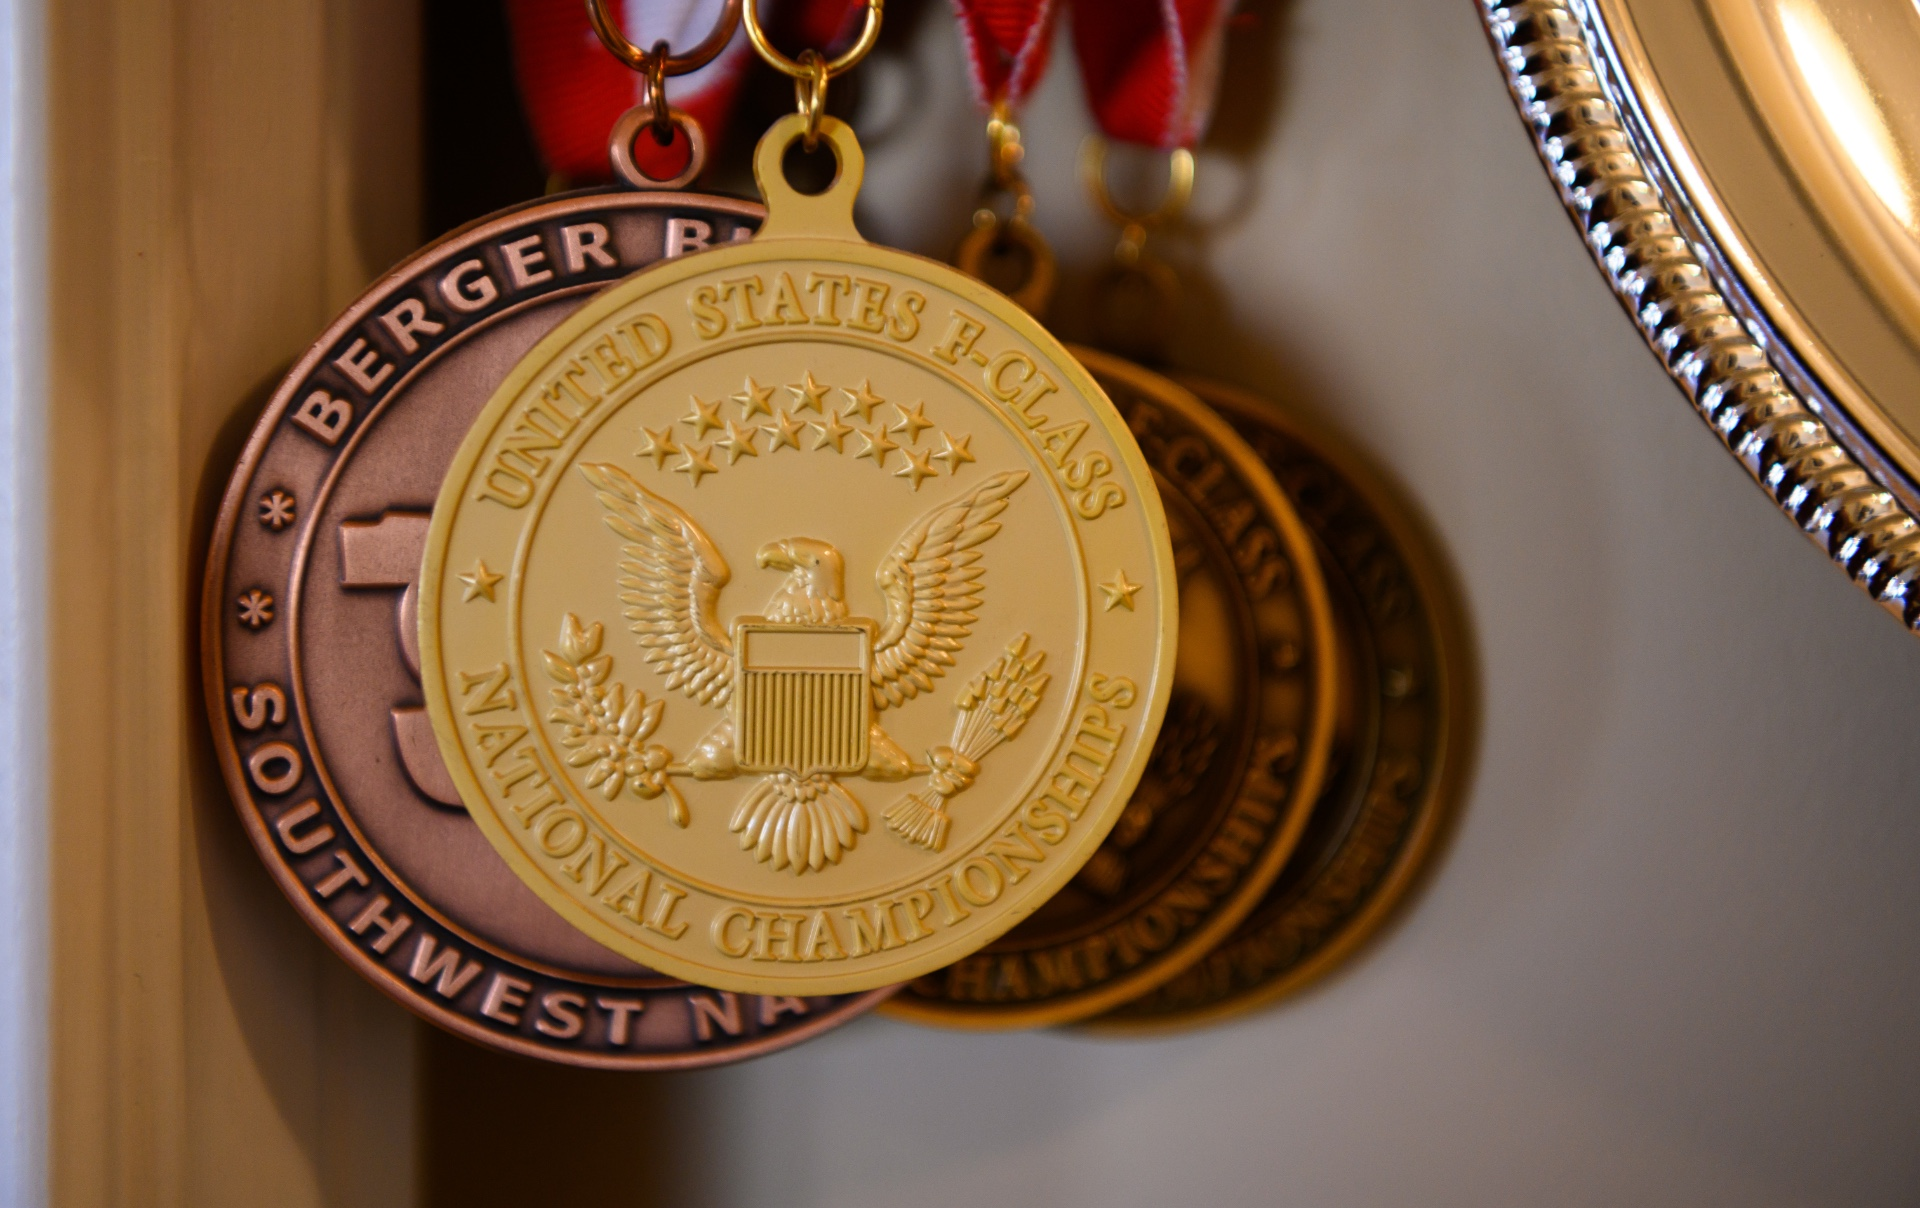 A close-up of medals from Addison's competitions, including the gold medal from the national championships.